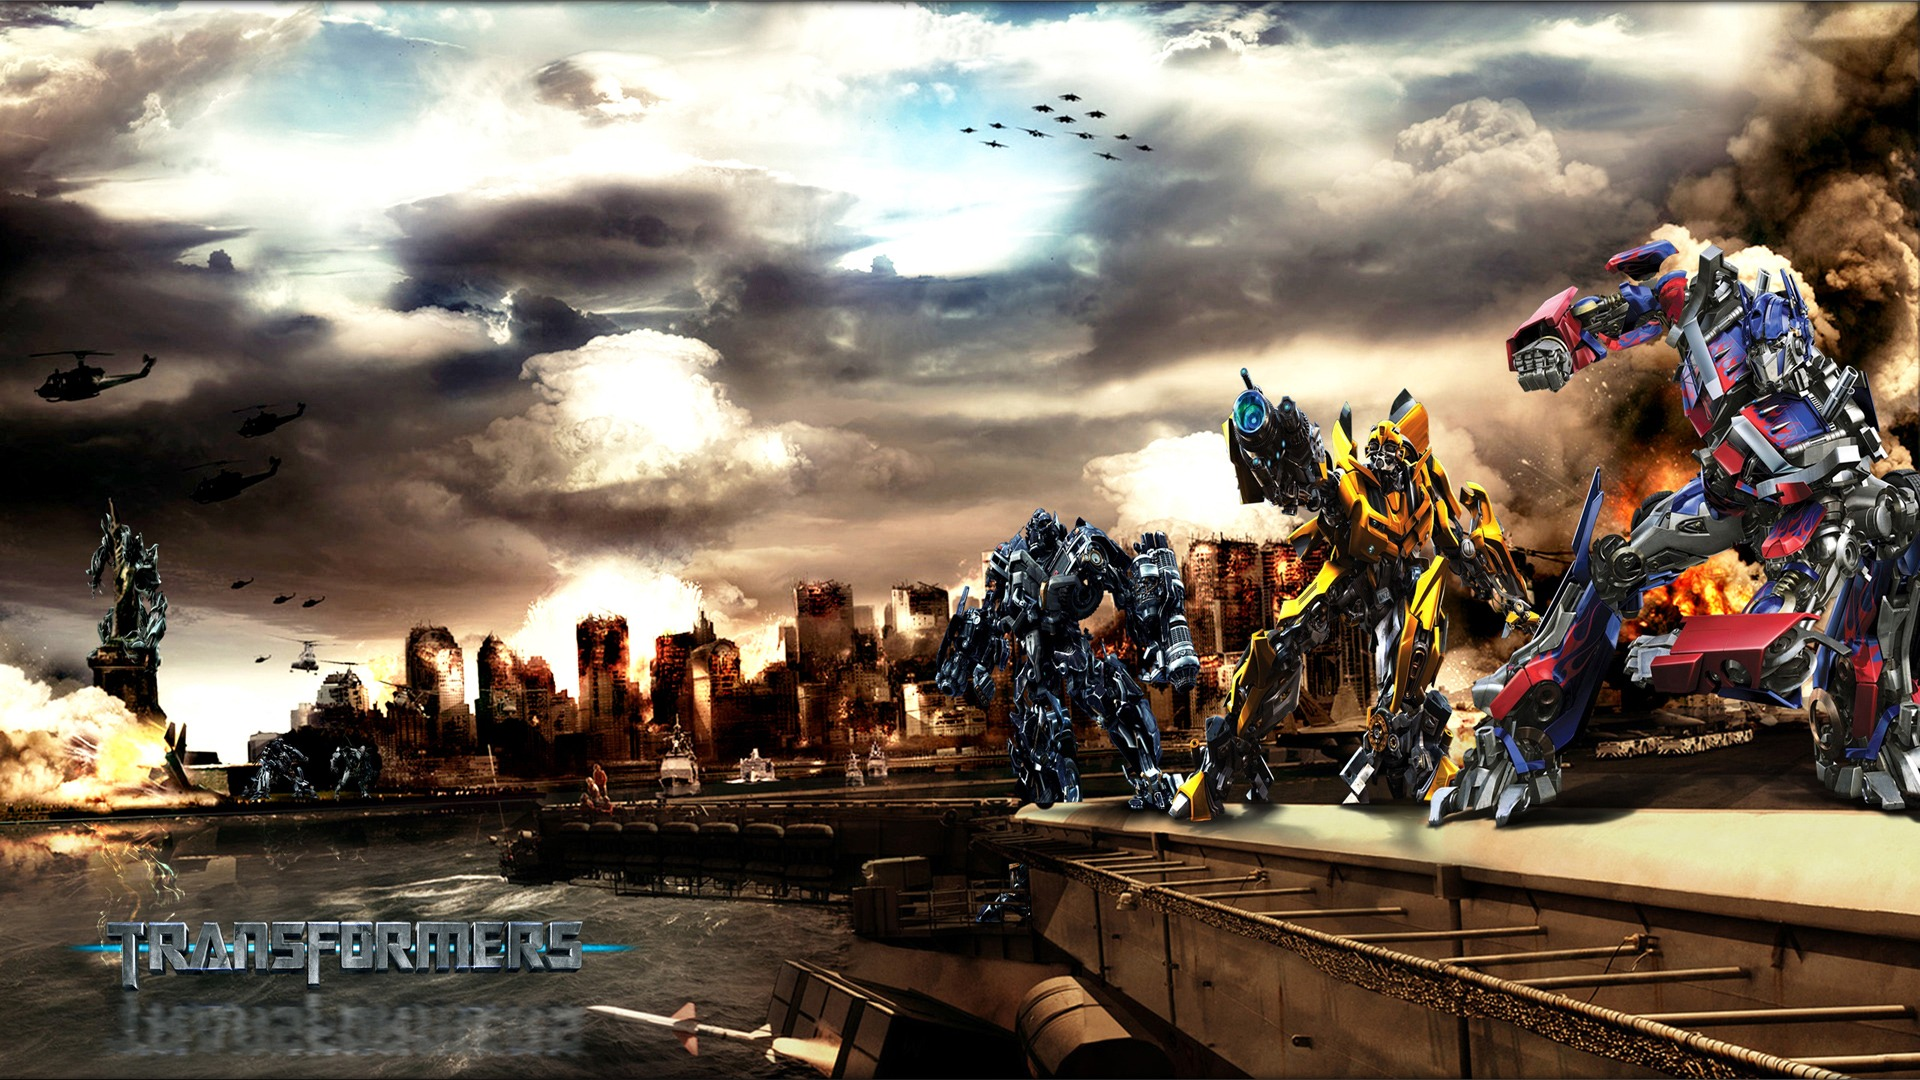 HD Transformers Wallpapers Backgrounds For Download 1920x1080